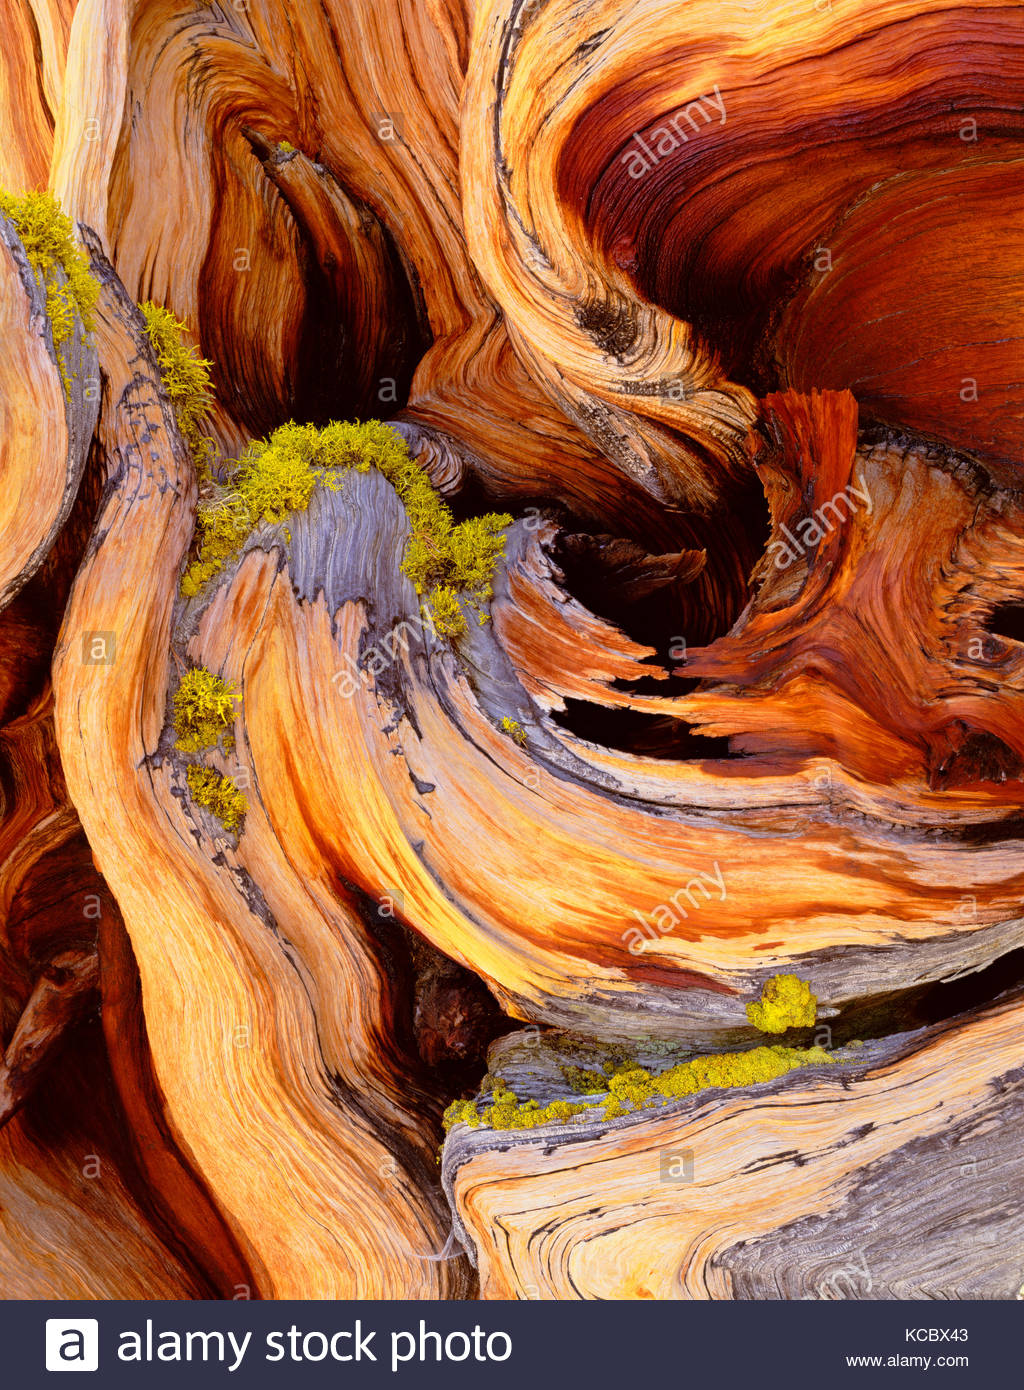 Detail of Ancient Bristlecone Pine, Great Basin National Park - Stock Image